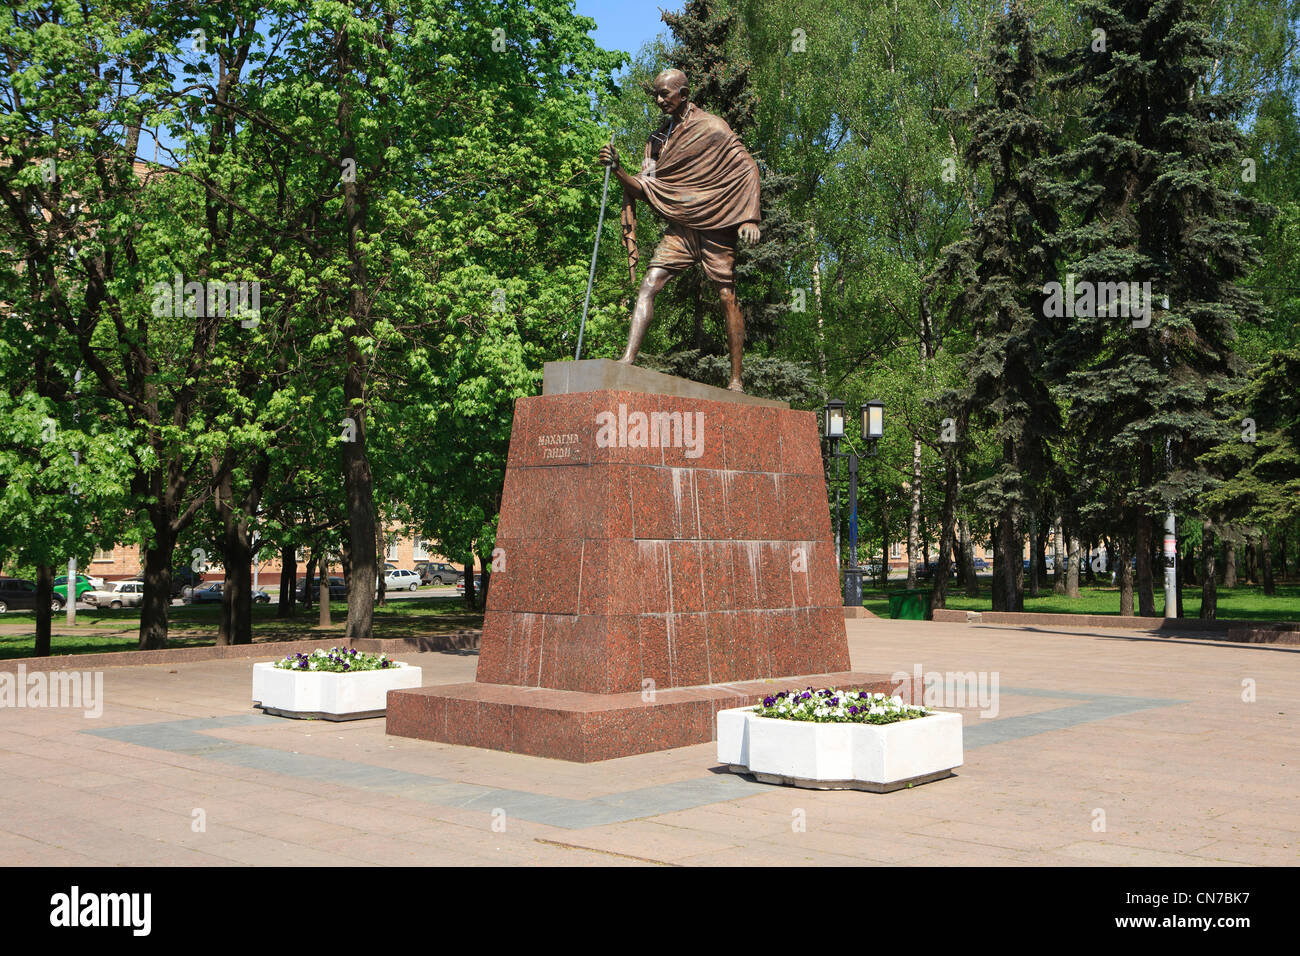 Monument to the preeminent leader of Indian nationalism Mahatma Gandhi (1869-1948) in Moscow, Russia - Stock Image